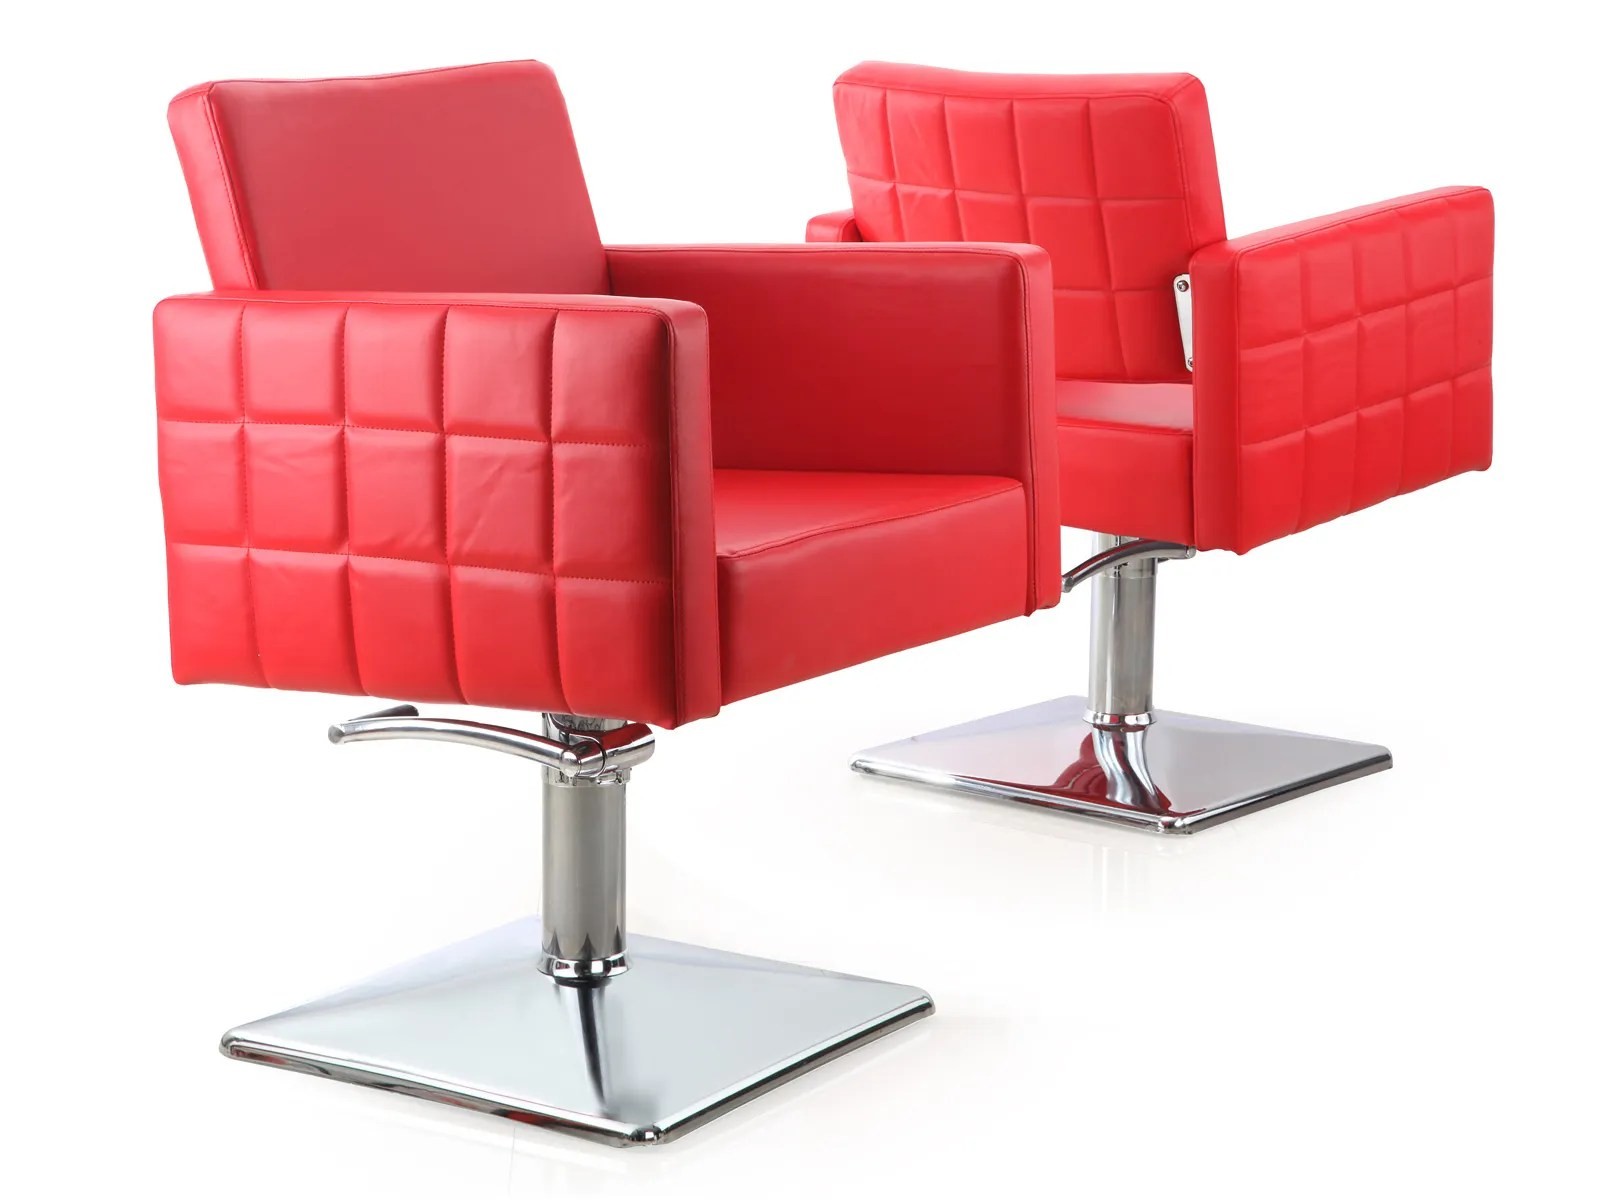 Red Salon Chairs Salon Furniture To Represent Your Style Living It Up Salon